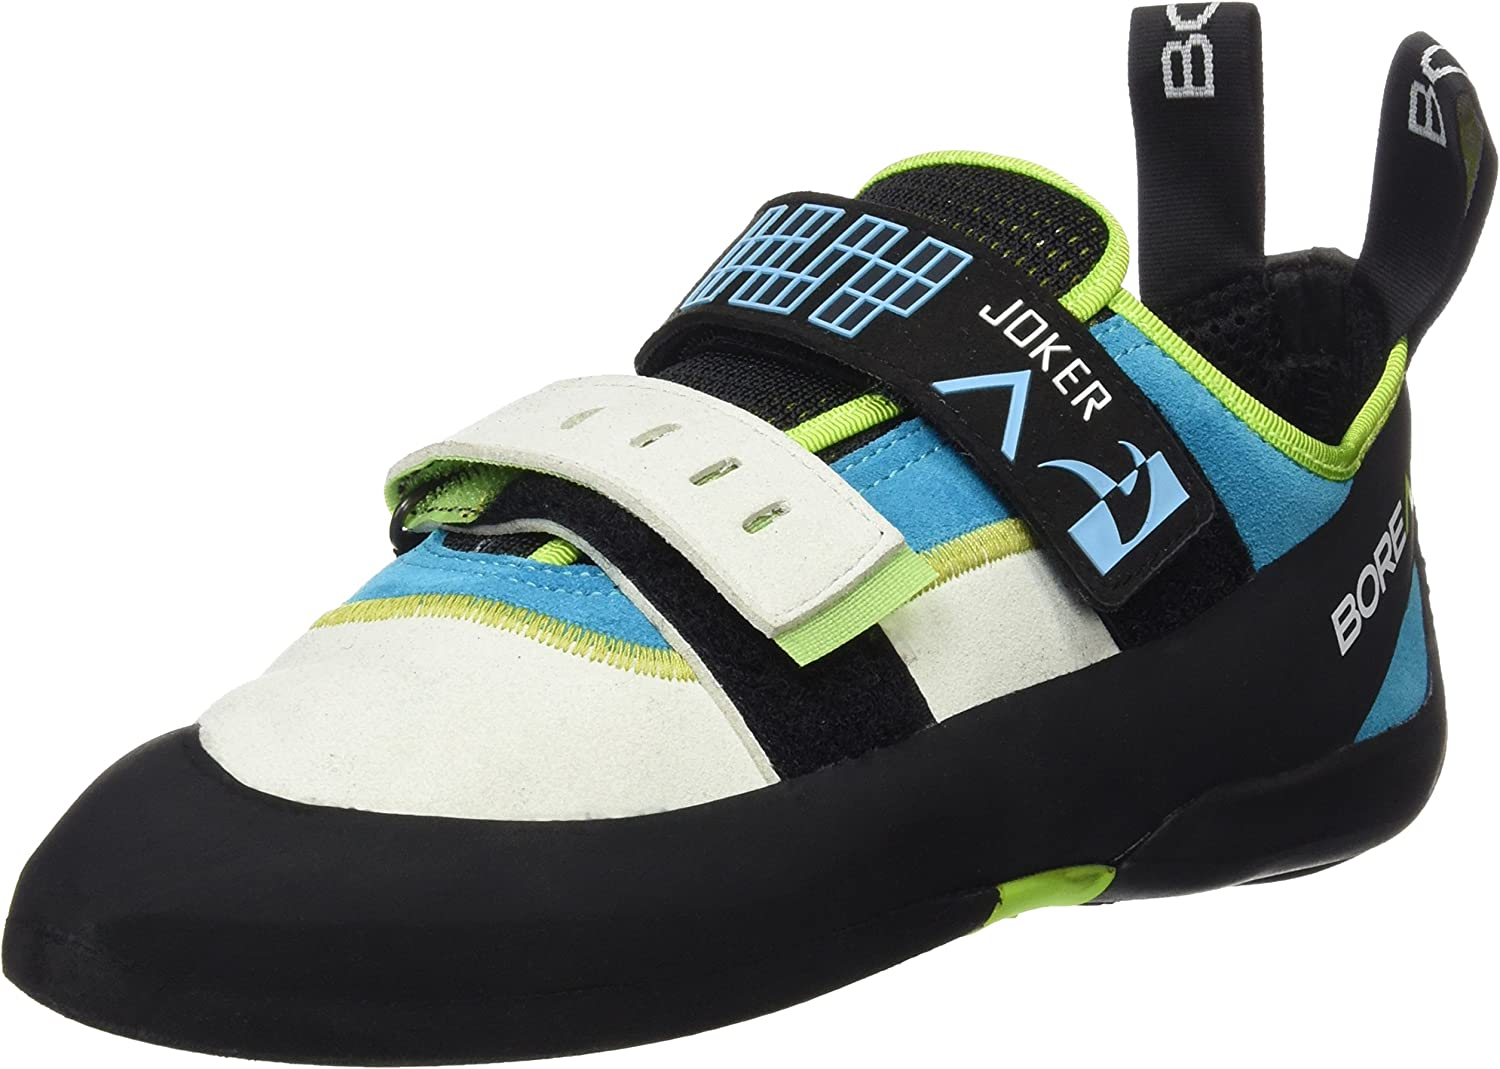 Boreal Direct stock discount Climbing Shoes Joker Special price for a limited time Womens Comfort